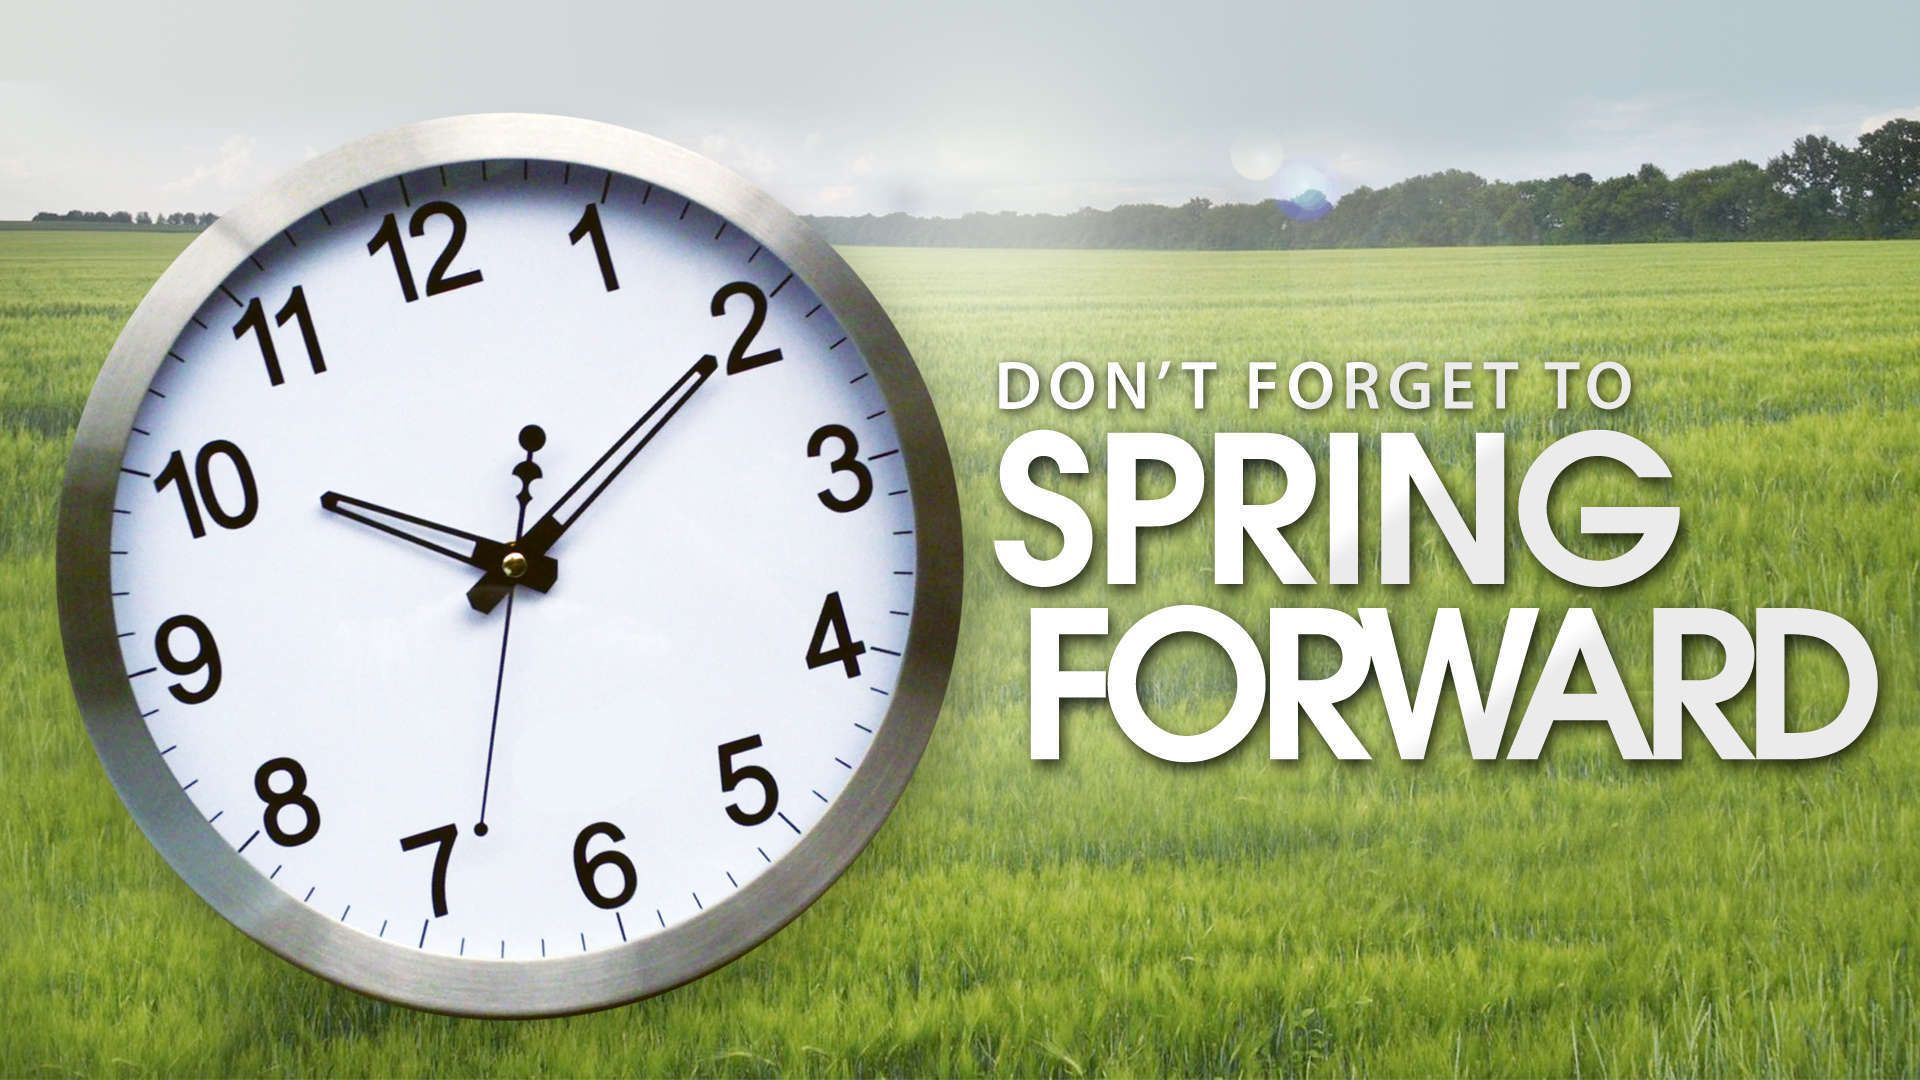 Spring Forward Meme Daylight Savings Time